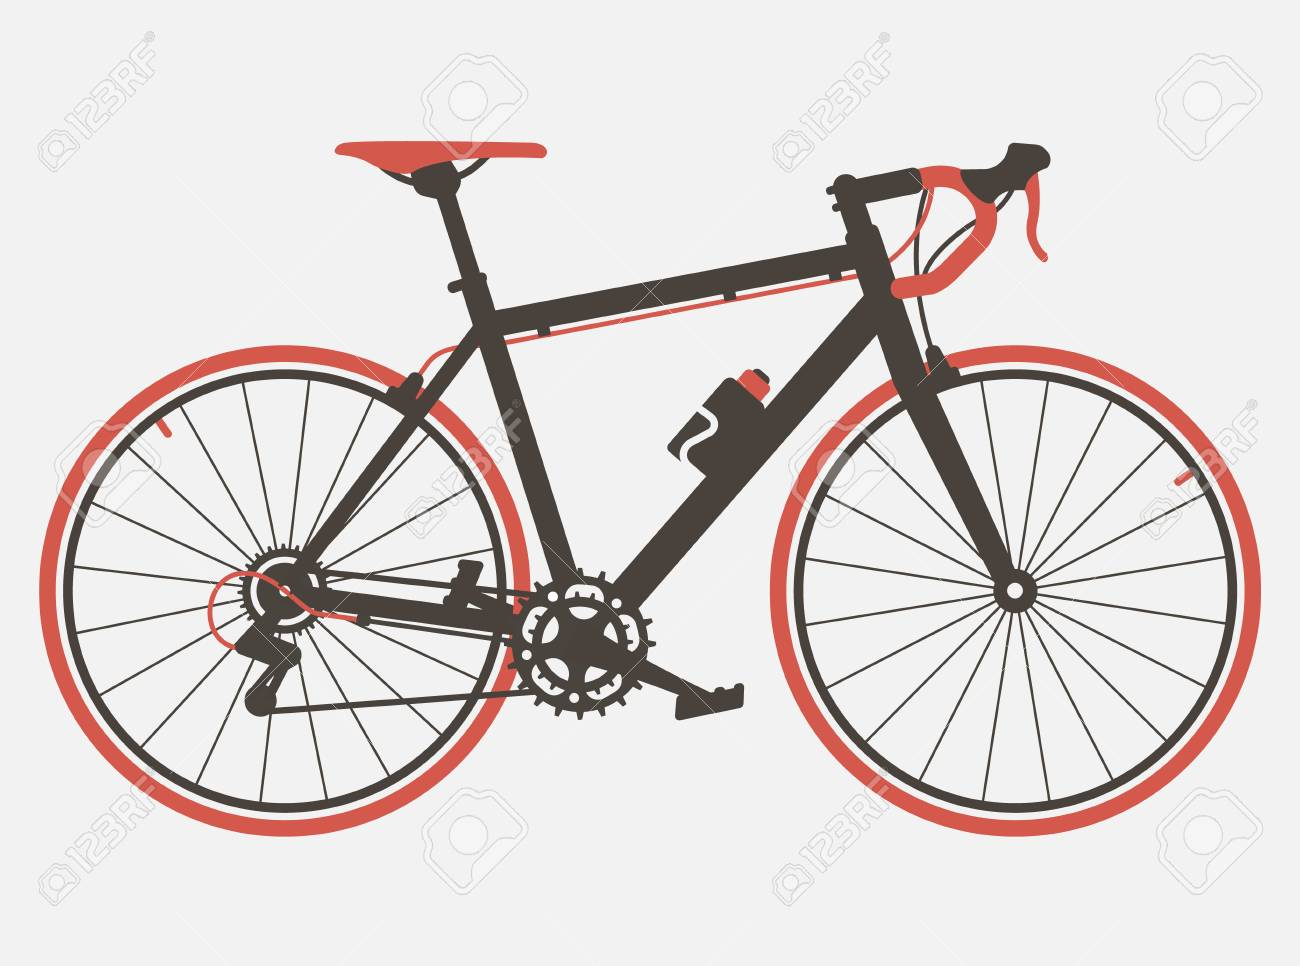 Road Bicycle Flat Design Retro Design Bicycle Vintage Style Royalty Free Cliparts Vectors And Stock Illustration Image 107503095